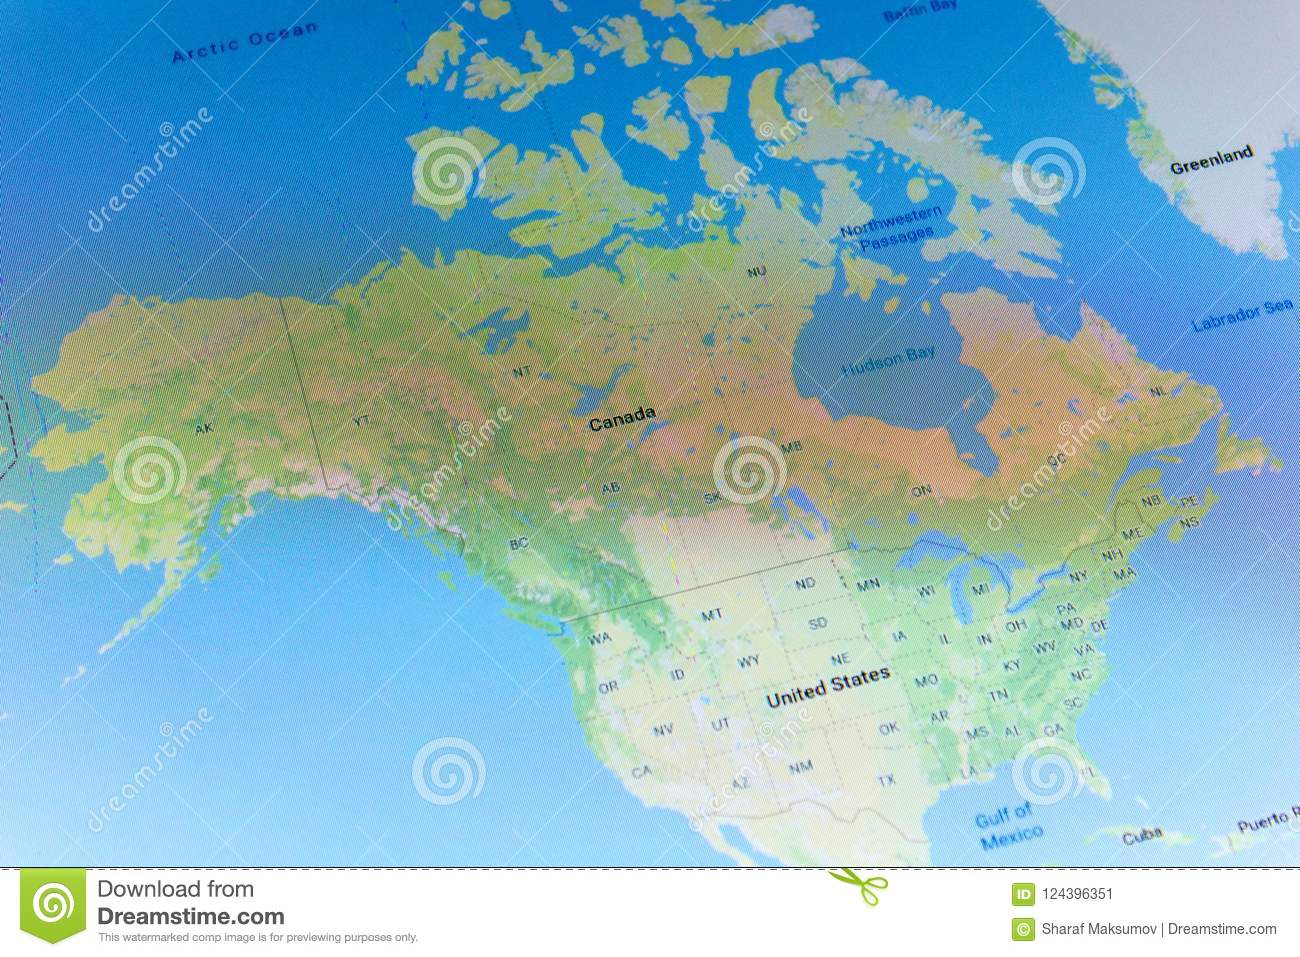 Ryazan, Russia - July 08, 2018: Country Of Canada On The ... on google map of seattle area, google street maps, google map of wv, google map of british columbia, google earth, google maps api, area code lookup canada, google maps blackberry, alberta canada, google map of grenada, cia world factbook canada, google map search, google map micronesia, google map of vancouver, ebay canada, blank map of canada, map in canada, google maps directions, map of us and canada, google satellite maps, google earth map, maps at google, mapquest canada, google maps uk, google mapquest, colored political map of canada, google maps pedometer, world atlas canada, maps.google.ro, google maps usa, google map request, google maps mobile, google maps driving directions, google map of north korea, google road maps, us google maps,